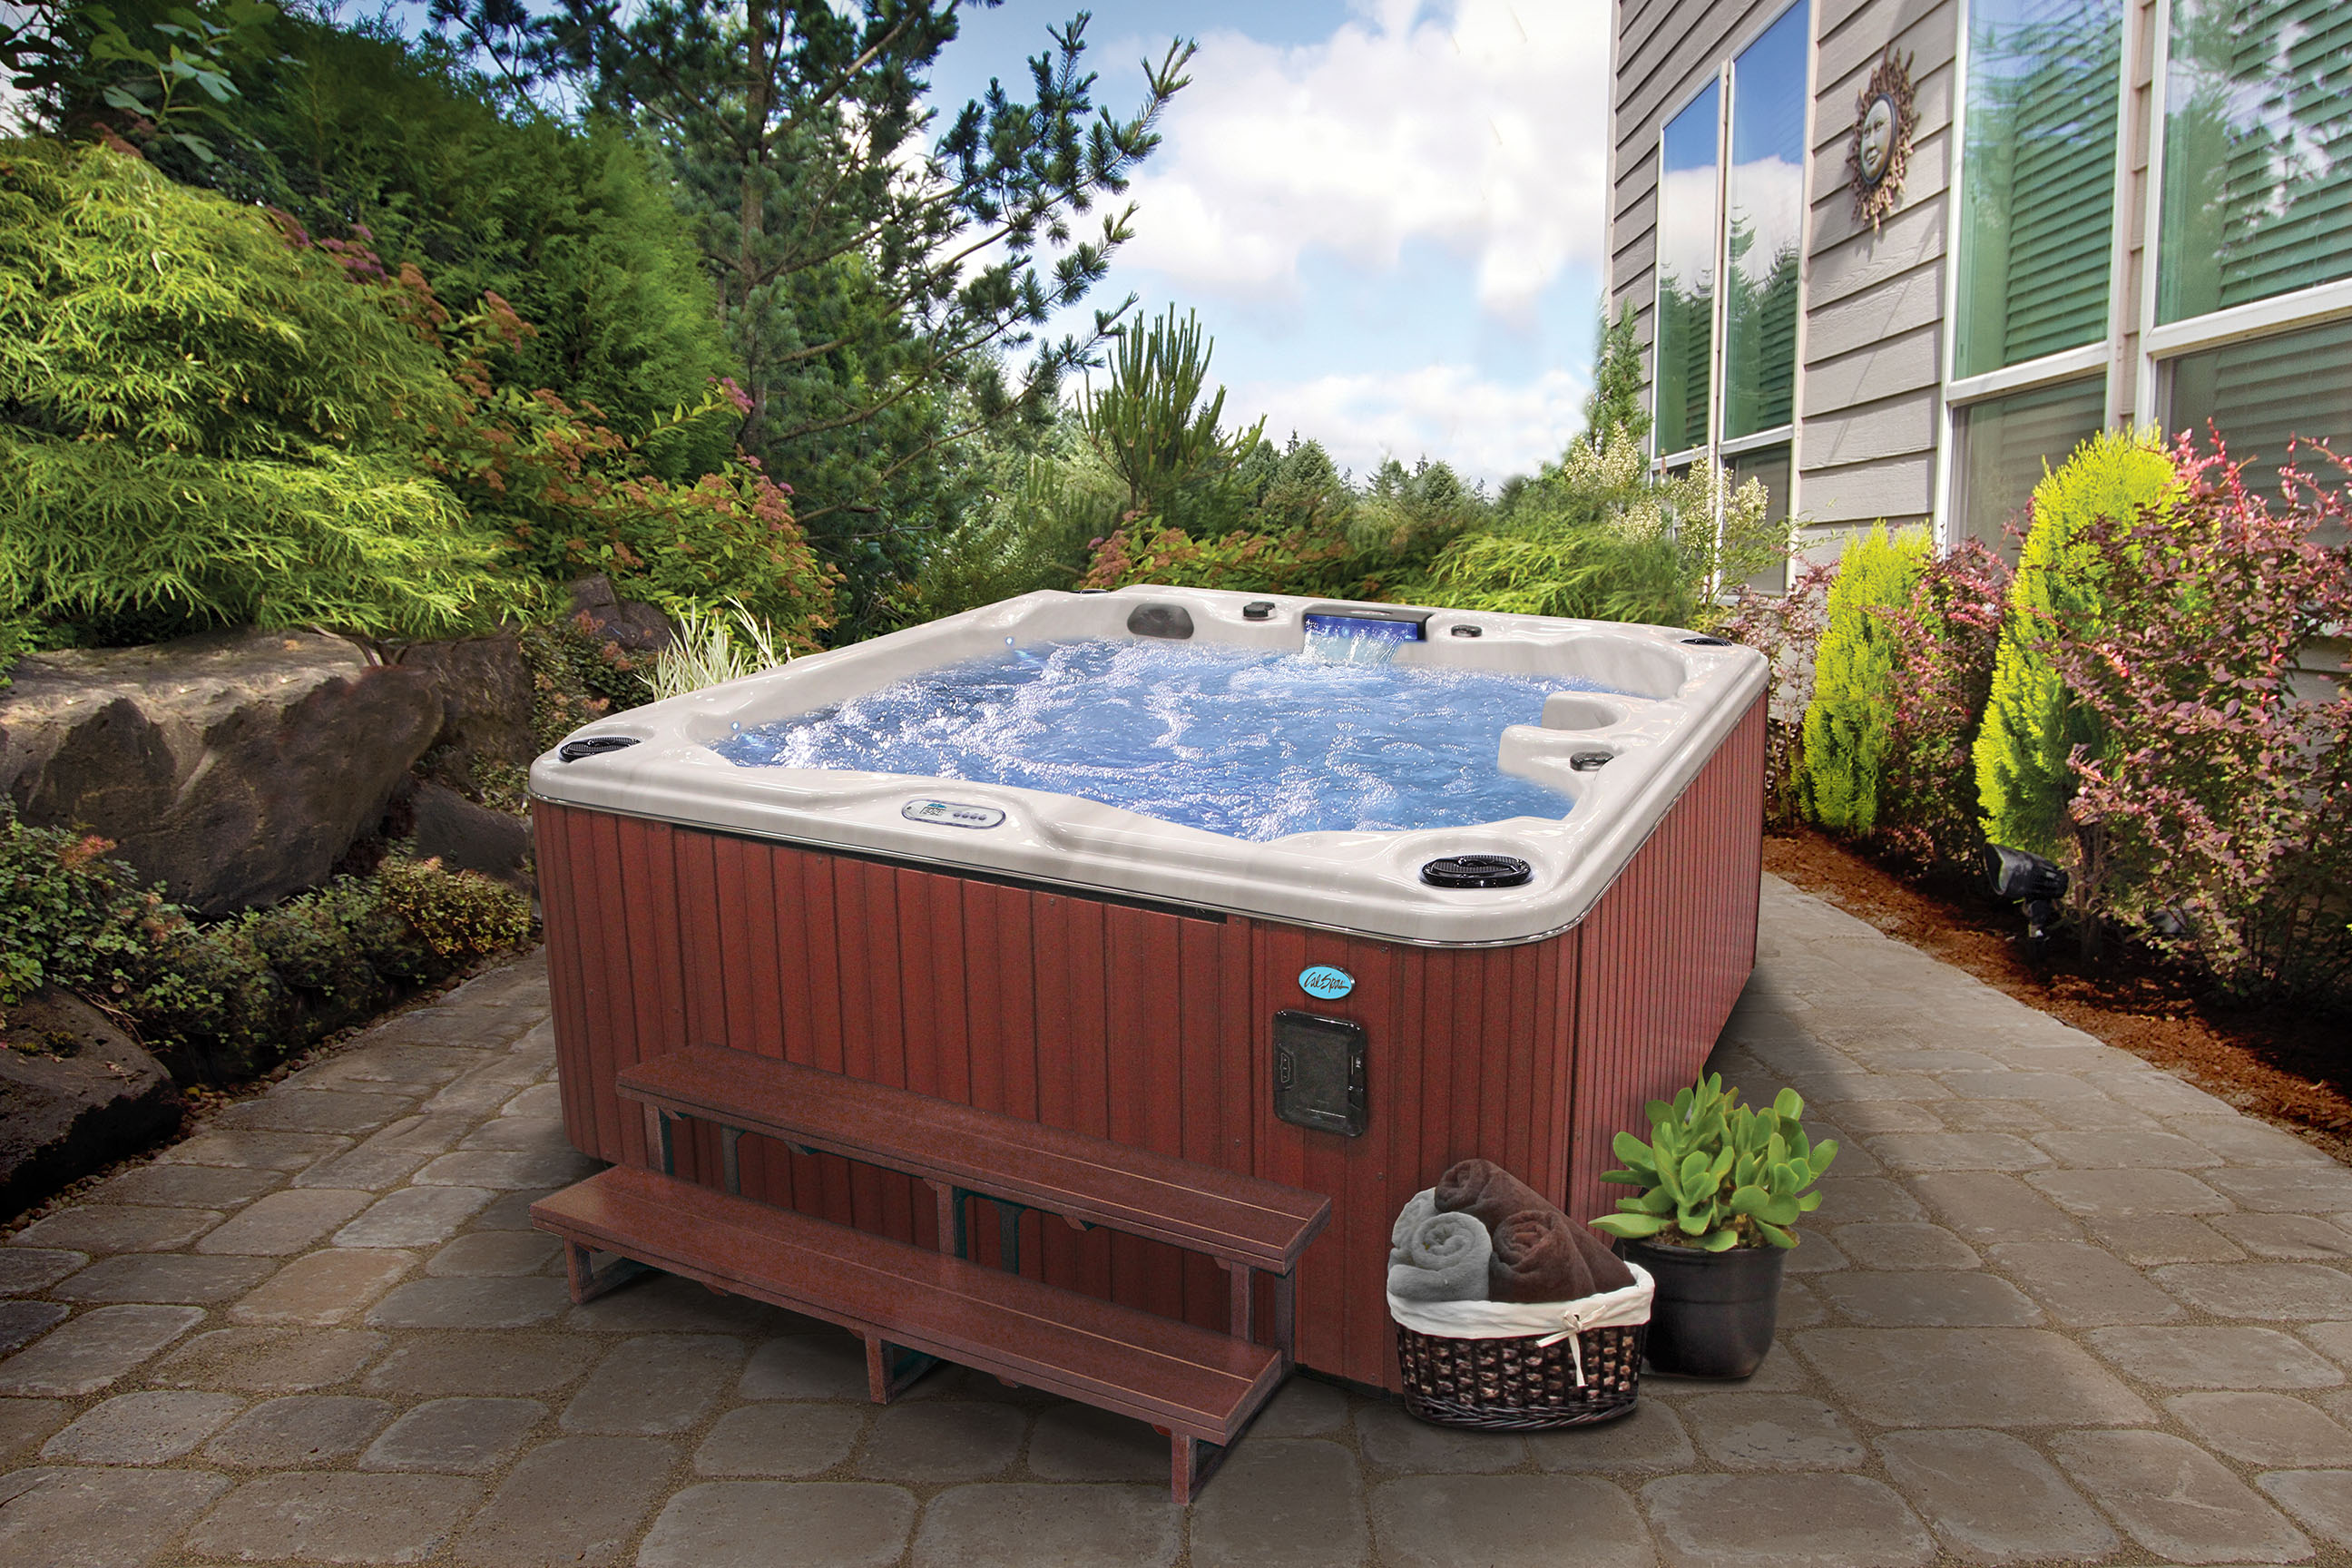 Hot Tubs For Sale At Calspascom Cal Spas Image May